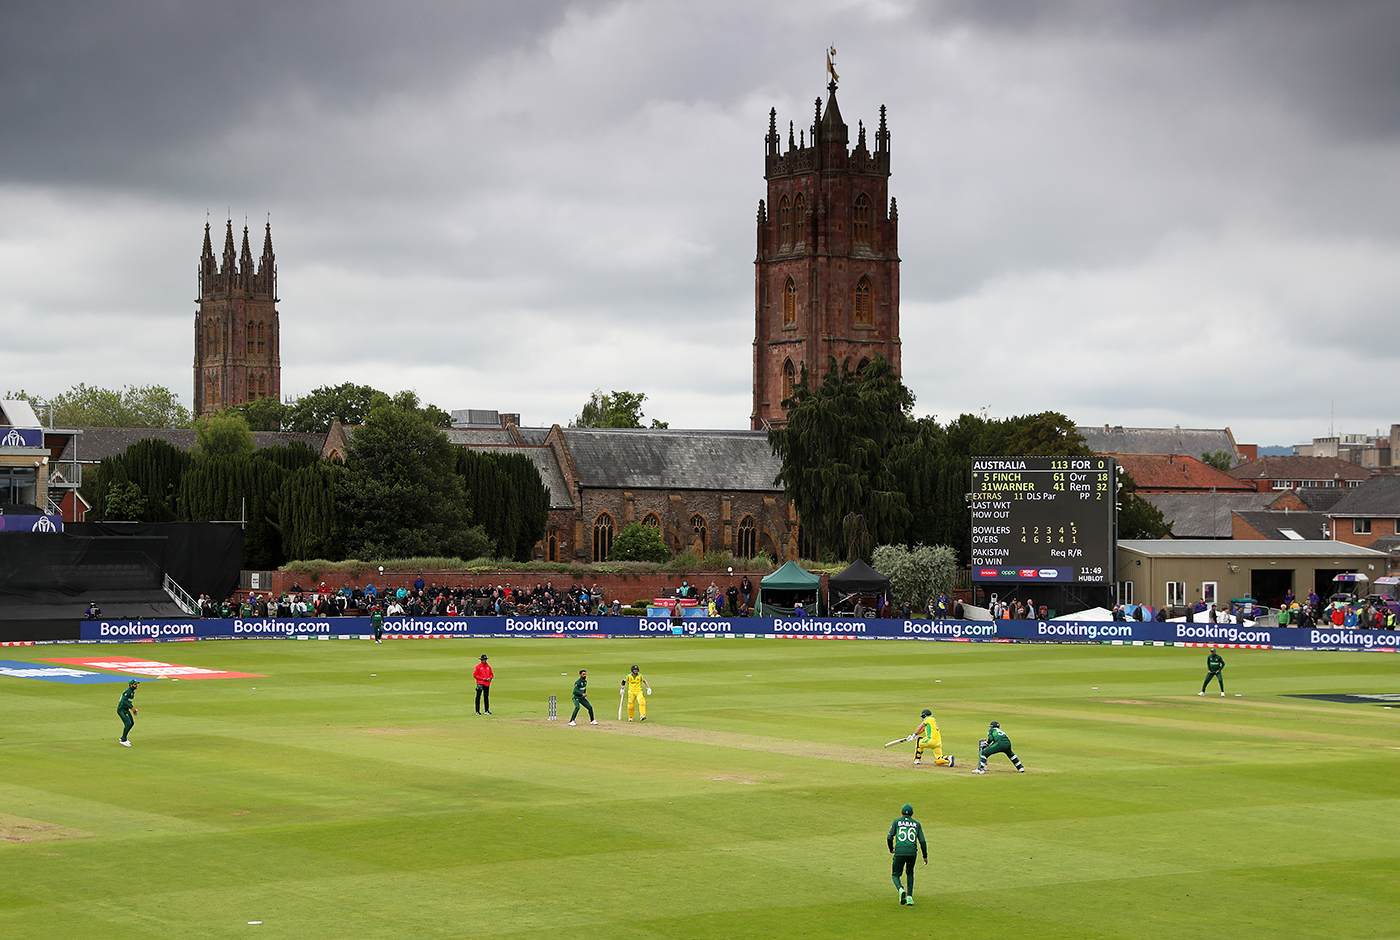 Finch led by example in the 2019 World Cup, averaging 50, with two hundreds and three fifties - including this 82 against Pakistan in Taunton